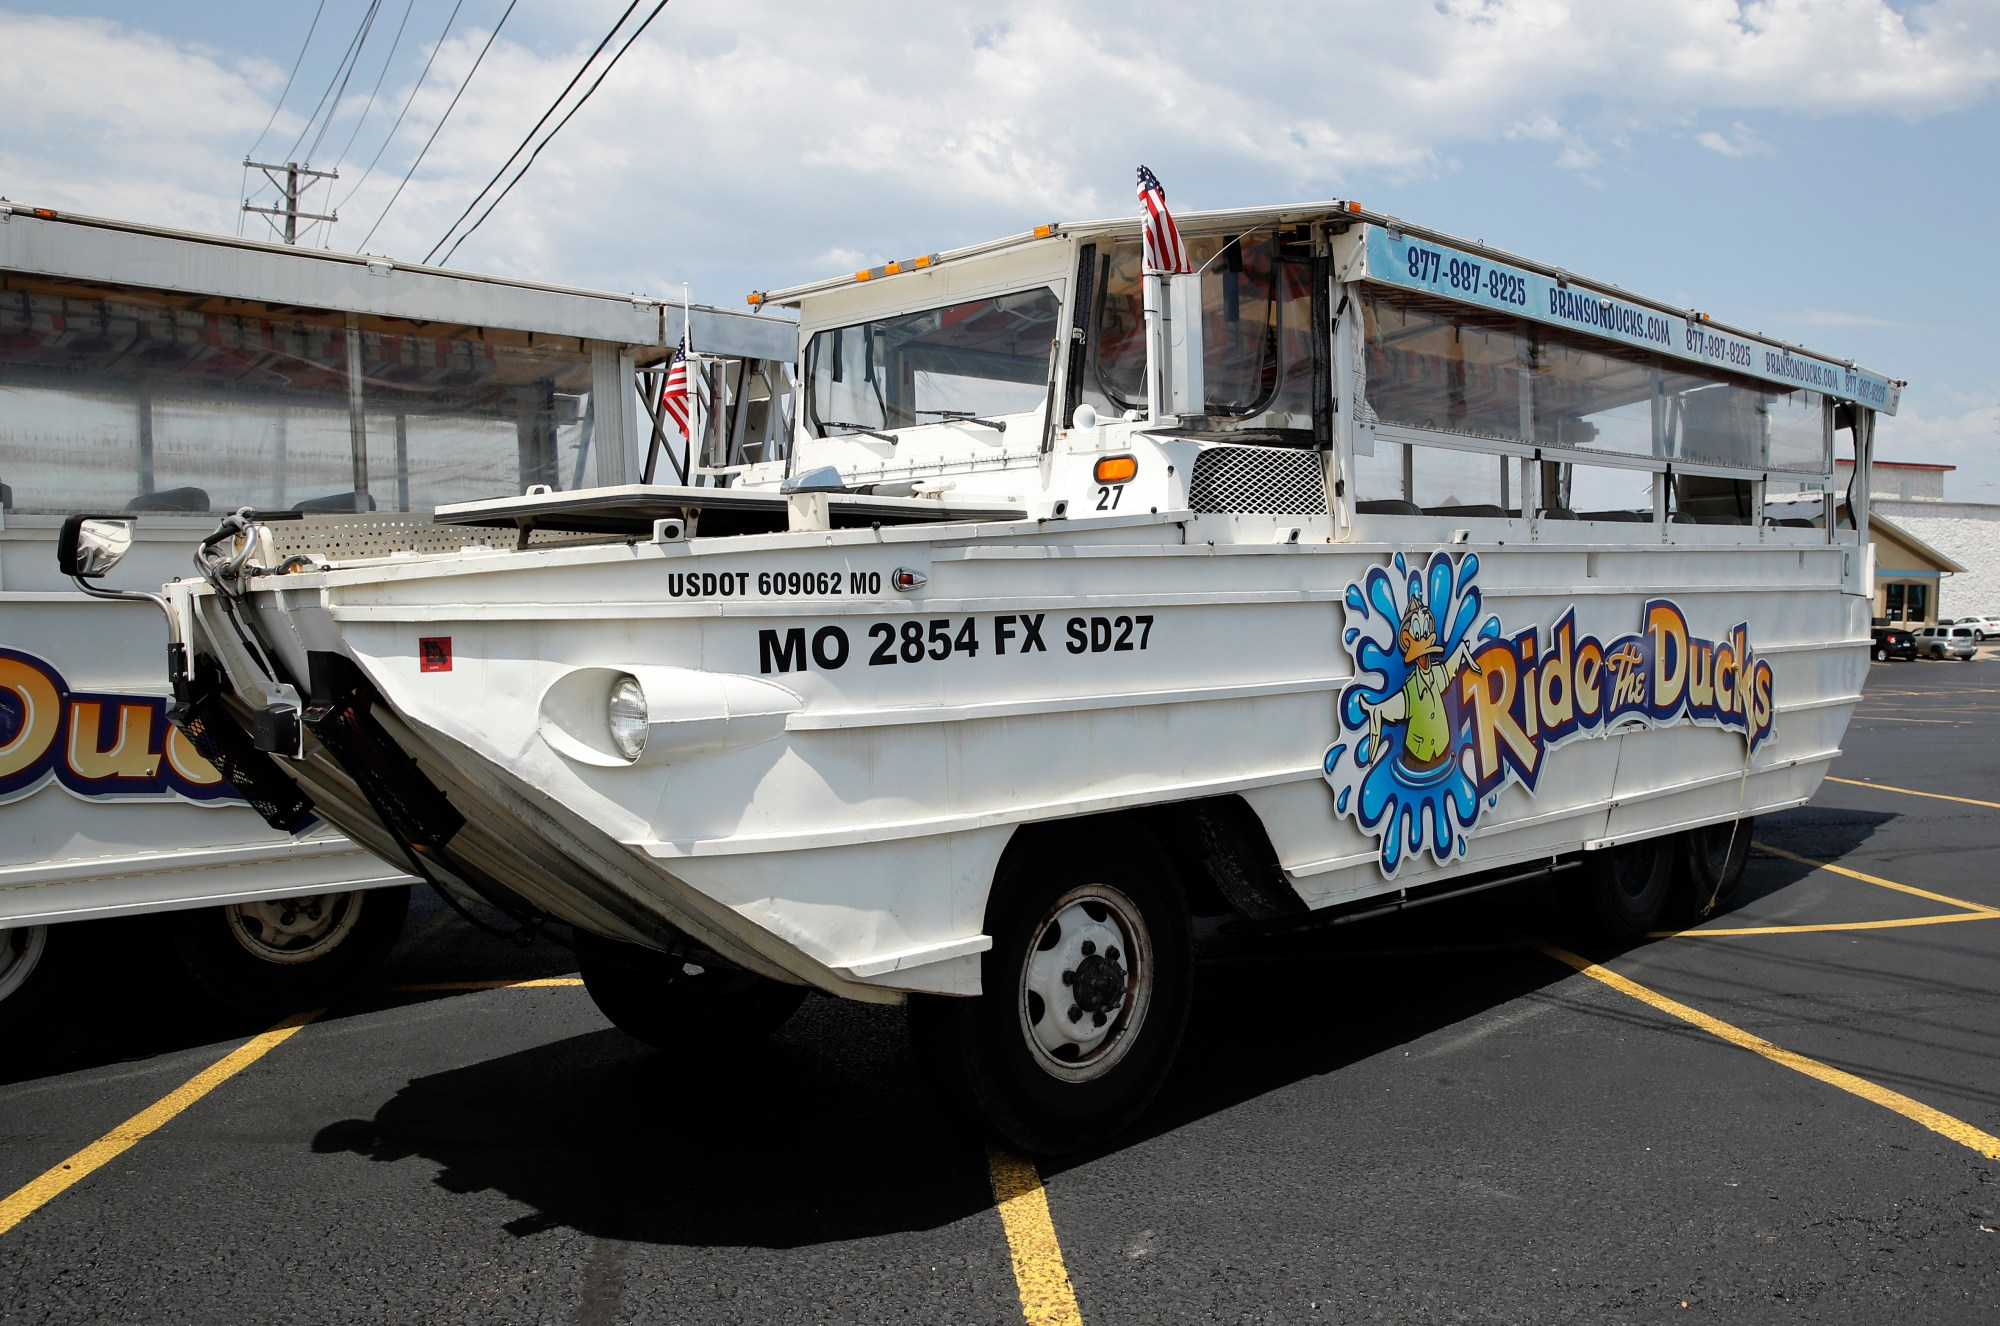 Missouri_Boat_Accident_Duck_Boats_43143-159532-159532.jpg39869346